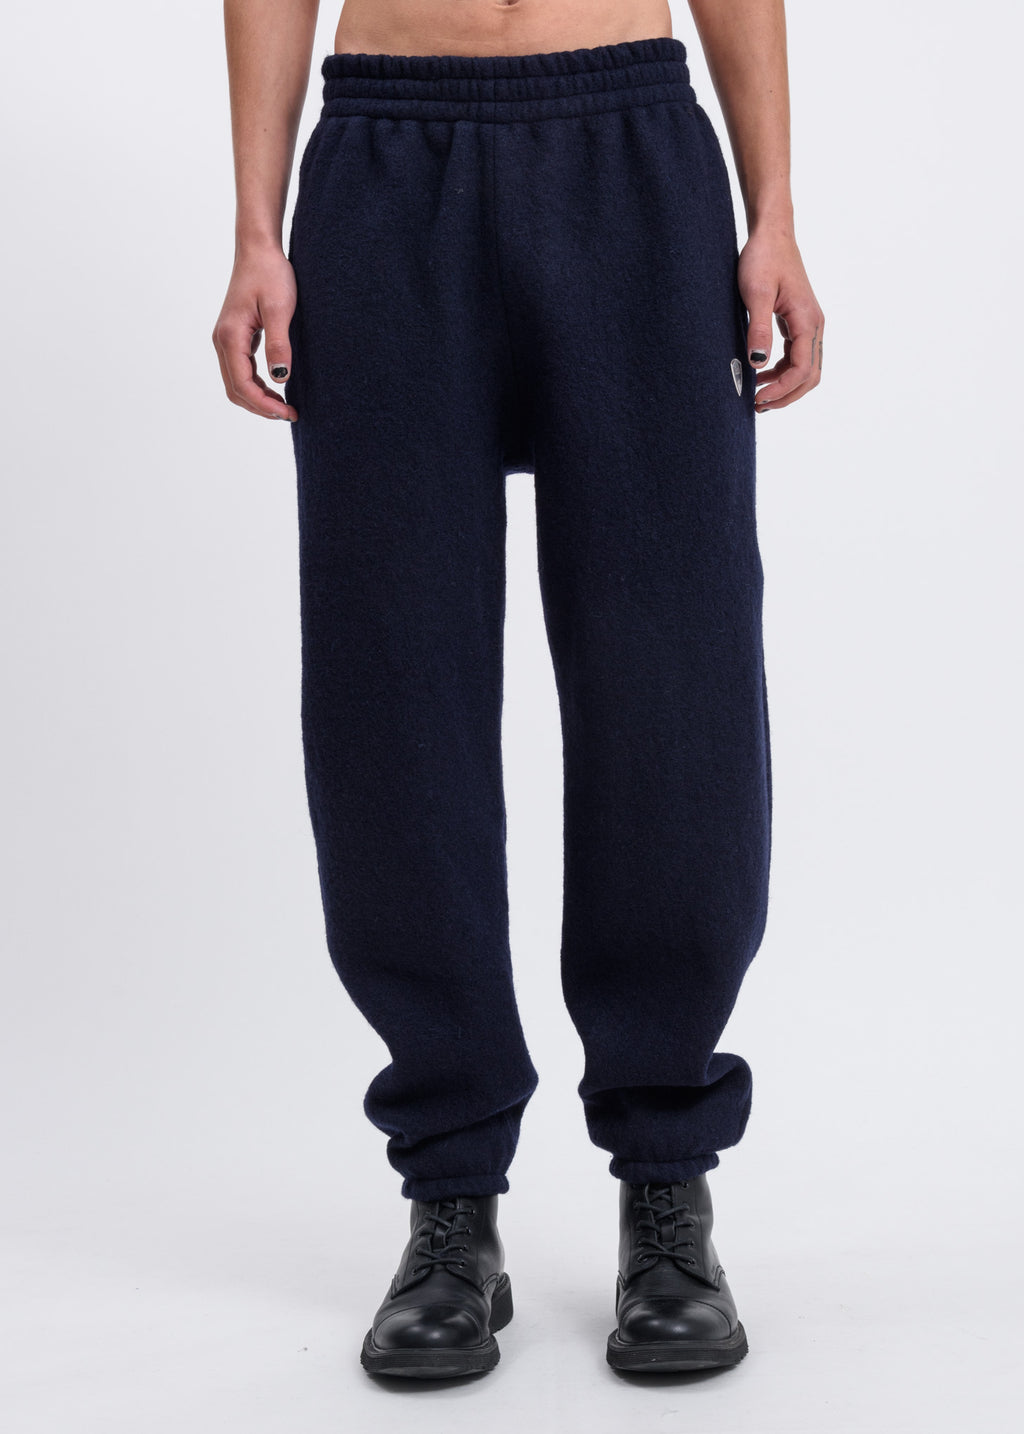 Navy Stein Jogging Trouser w/ Shield Logo